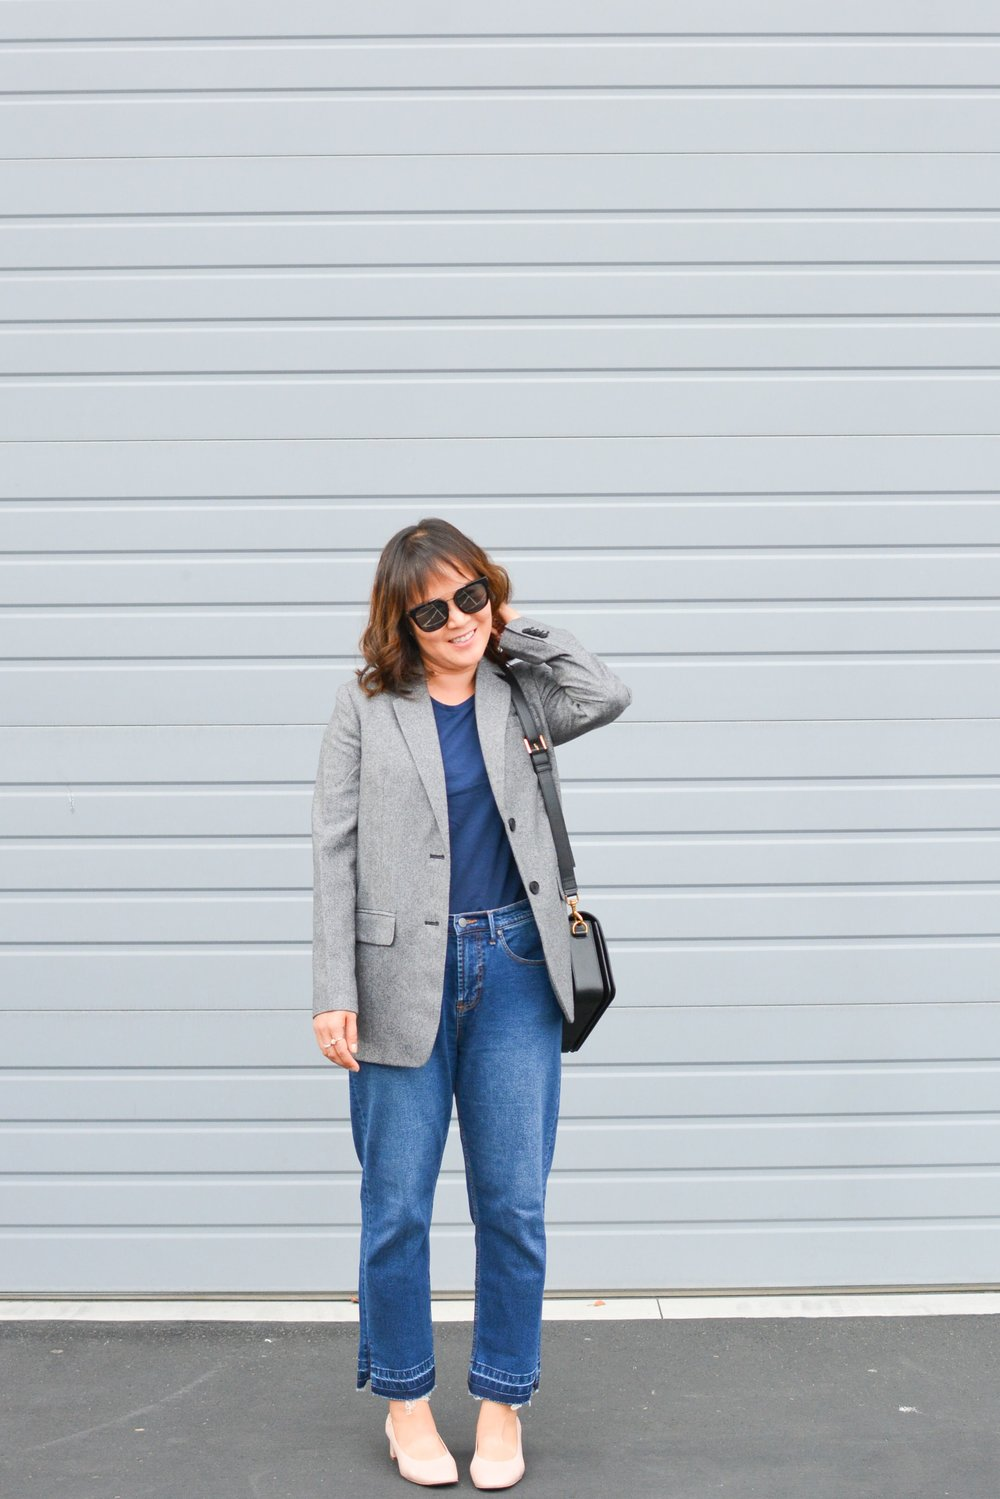 Everlane Review The Oversized Blazer (2 of 2)-min.jpg